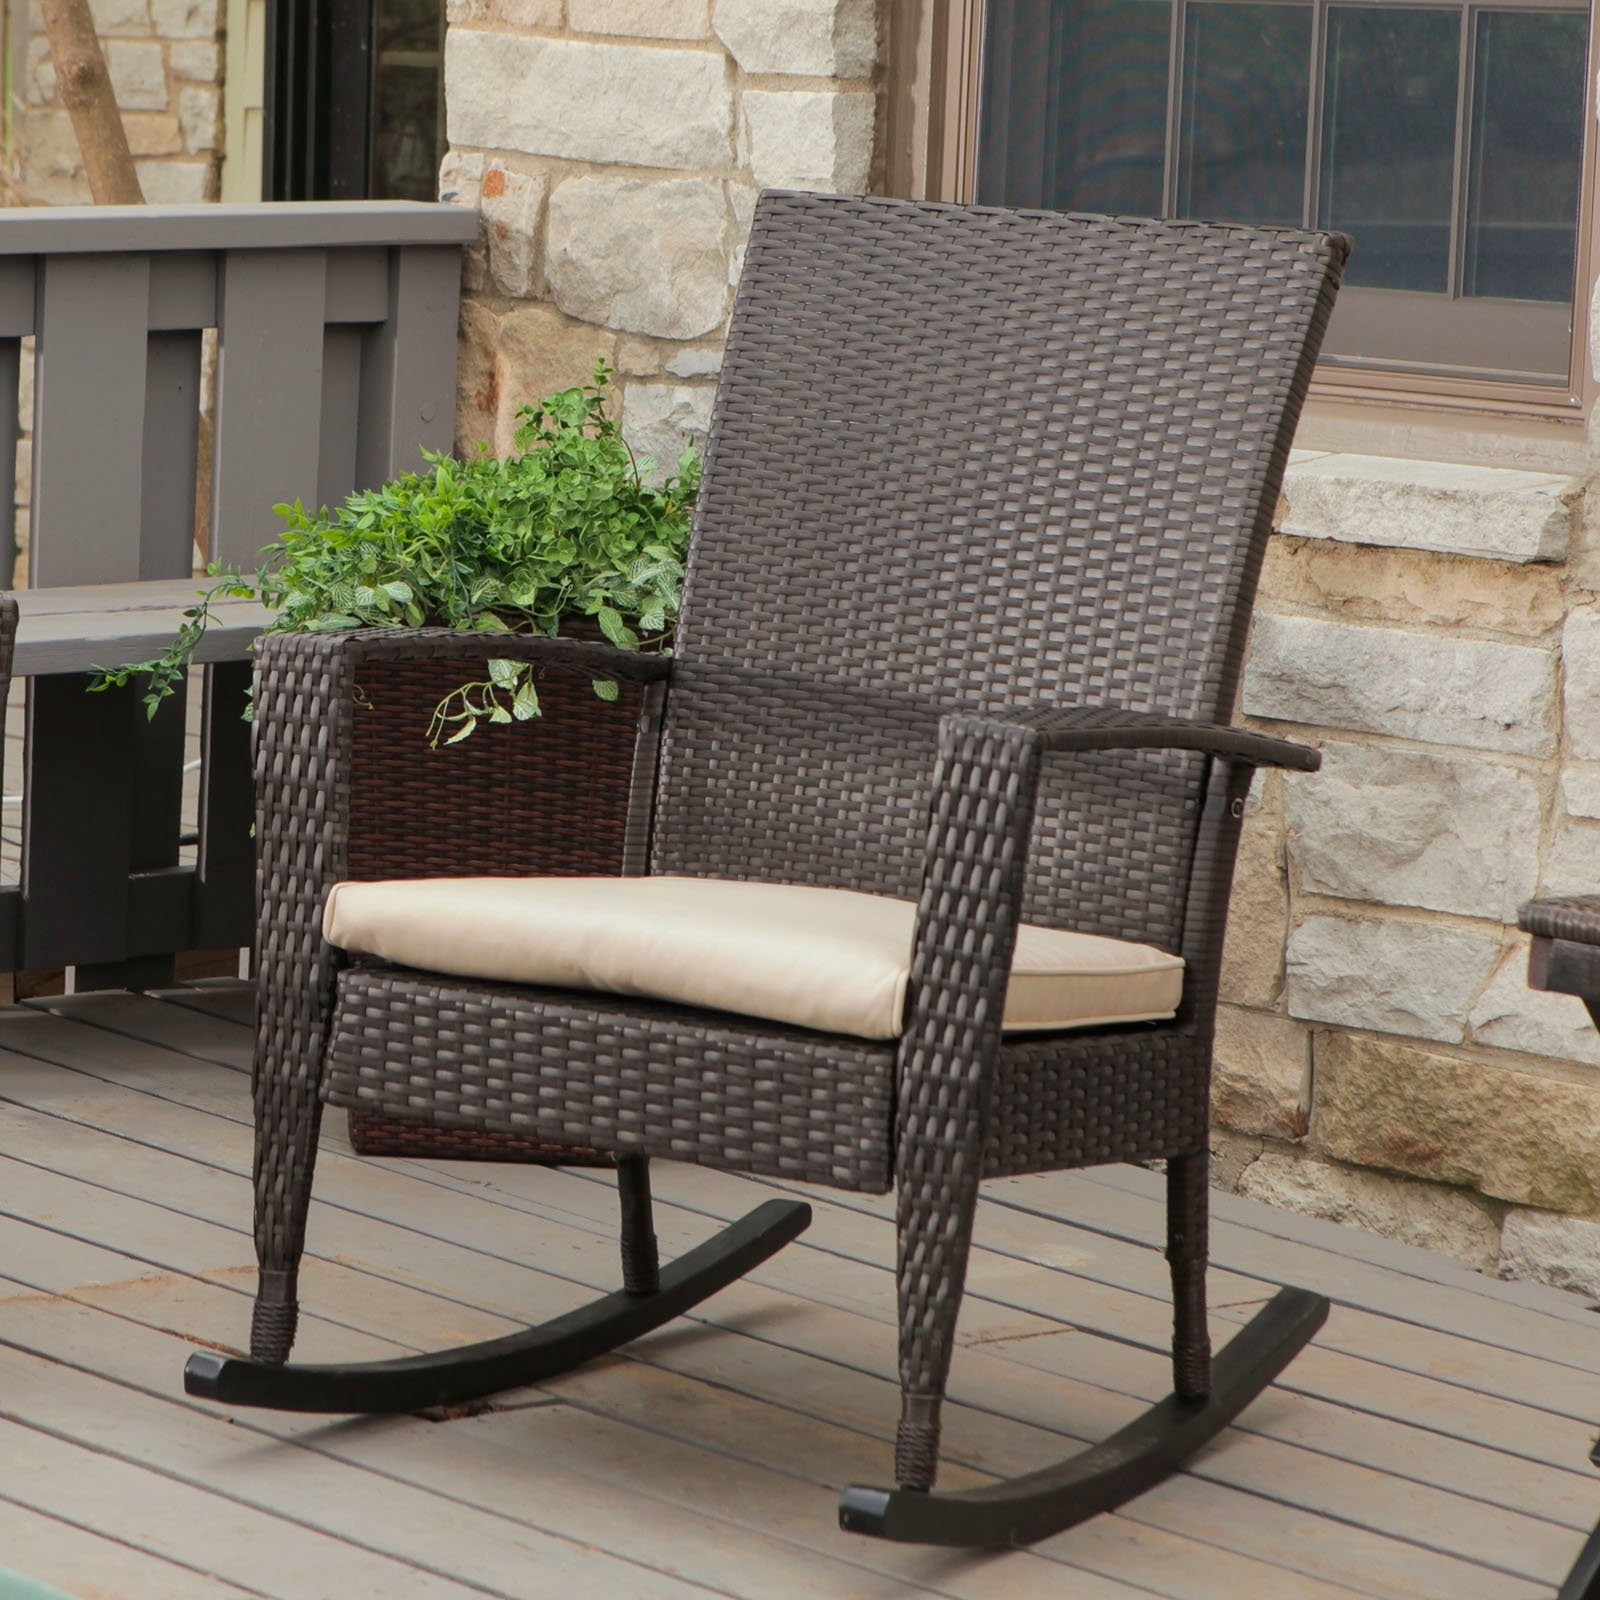 Fine Rocking Chair Cushion Outdoor In Office Chairs Online With Inside Best And Newest Modern Patio Rocking Chairs (View 5 of 20)